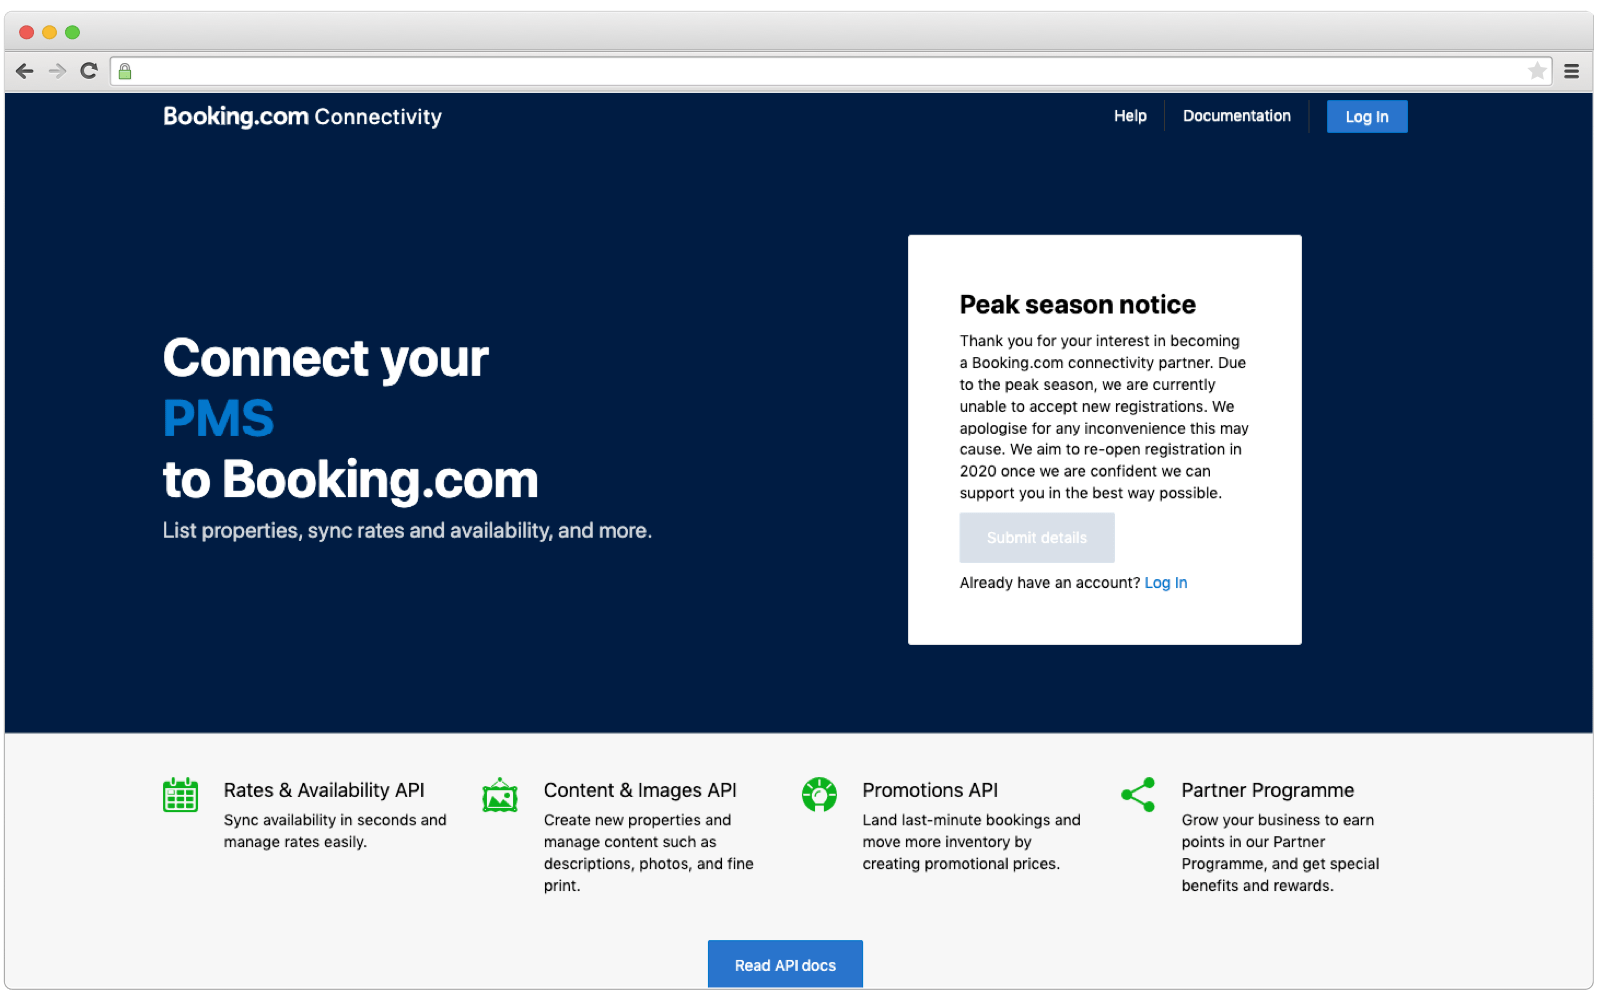 Booking.com Connectivity APIs